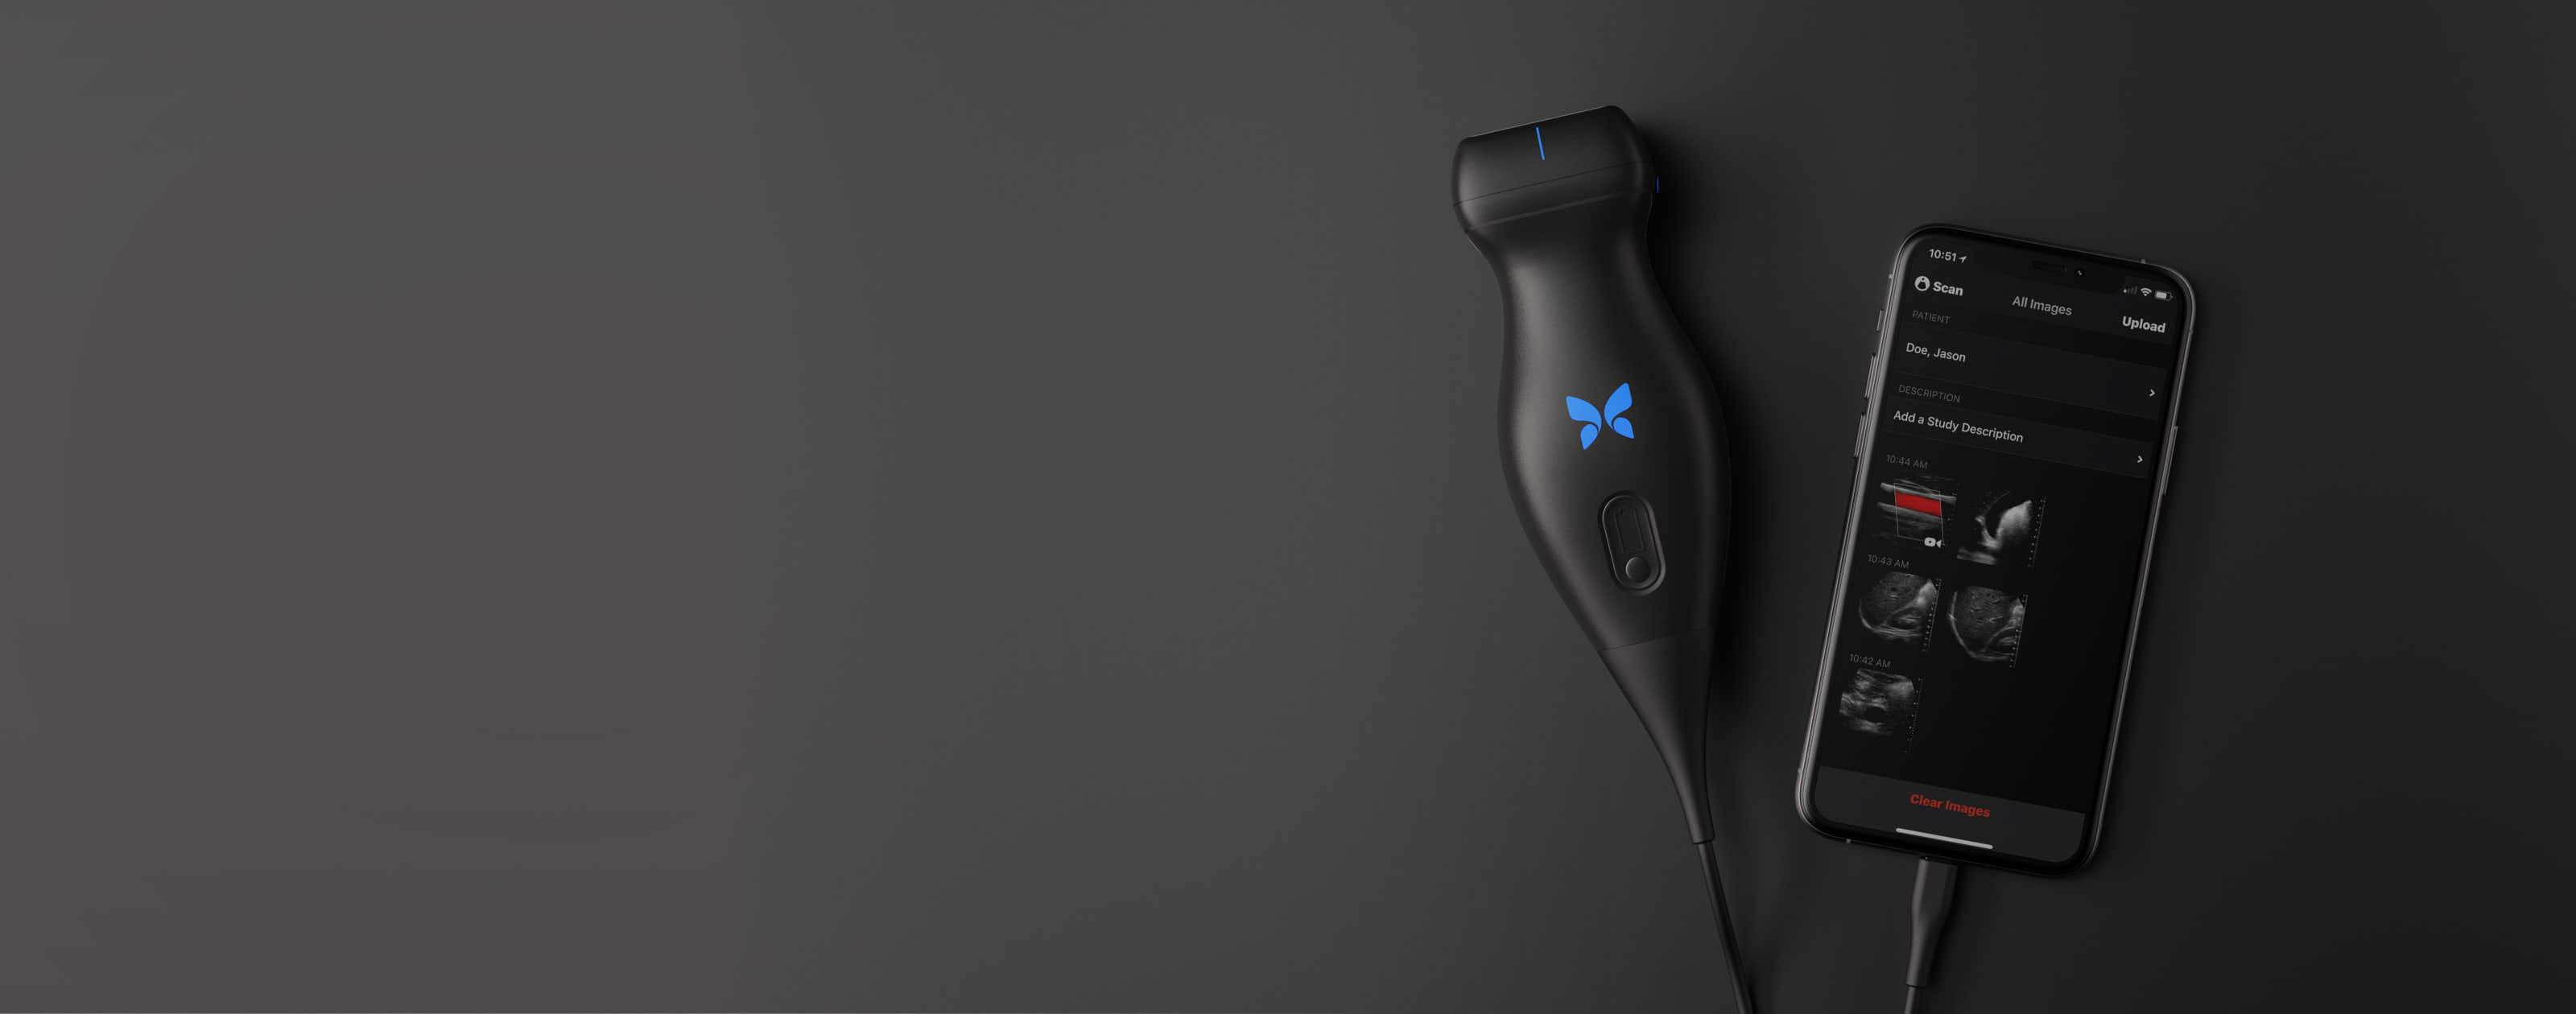 Butterfly iQ on a dark gray background connected to a phone